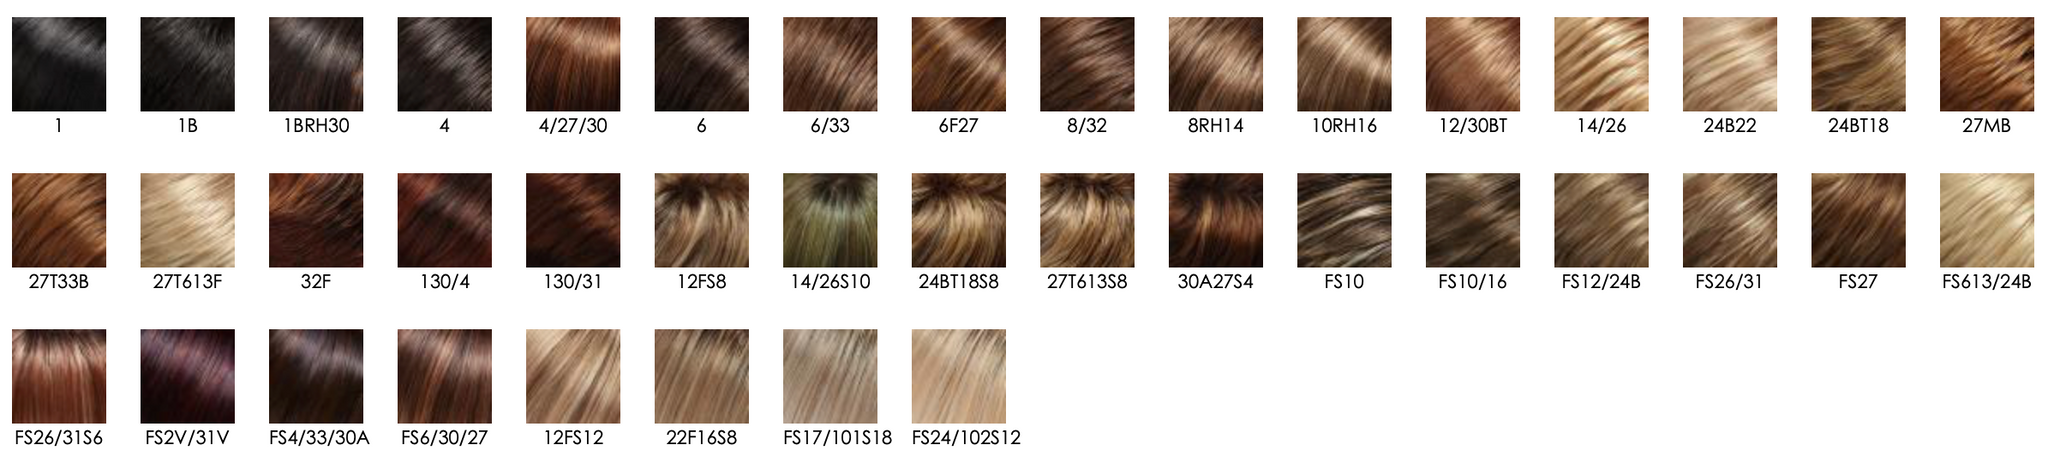 Zara by Jon Renau Wigs | UK | MiMo Wigs the Hairloss wig expert